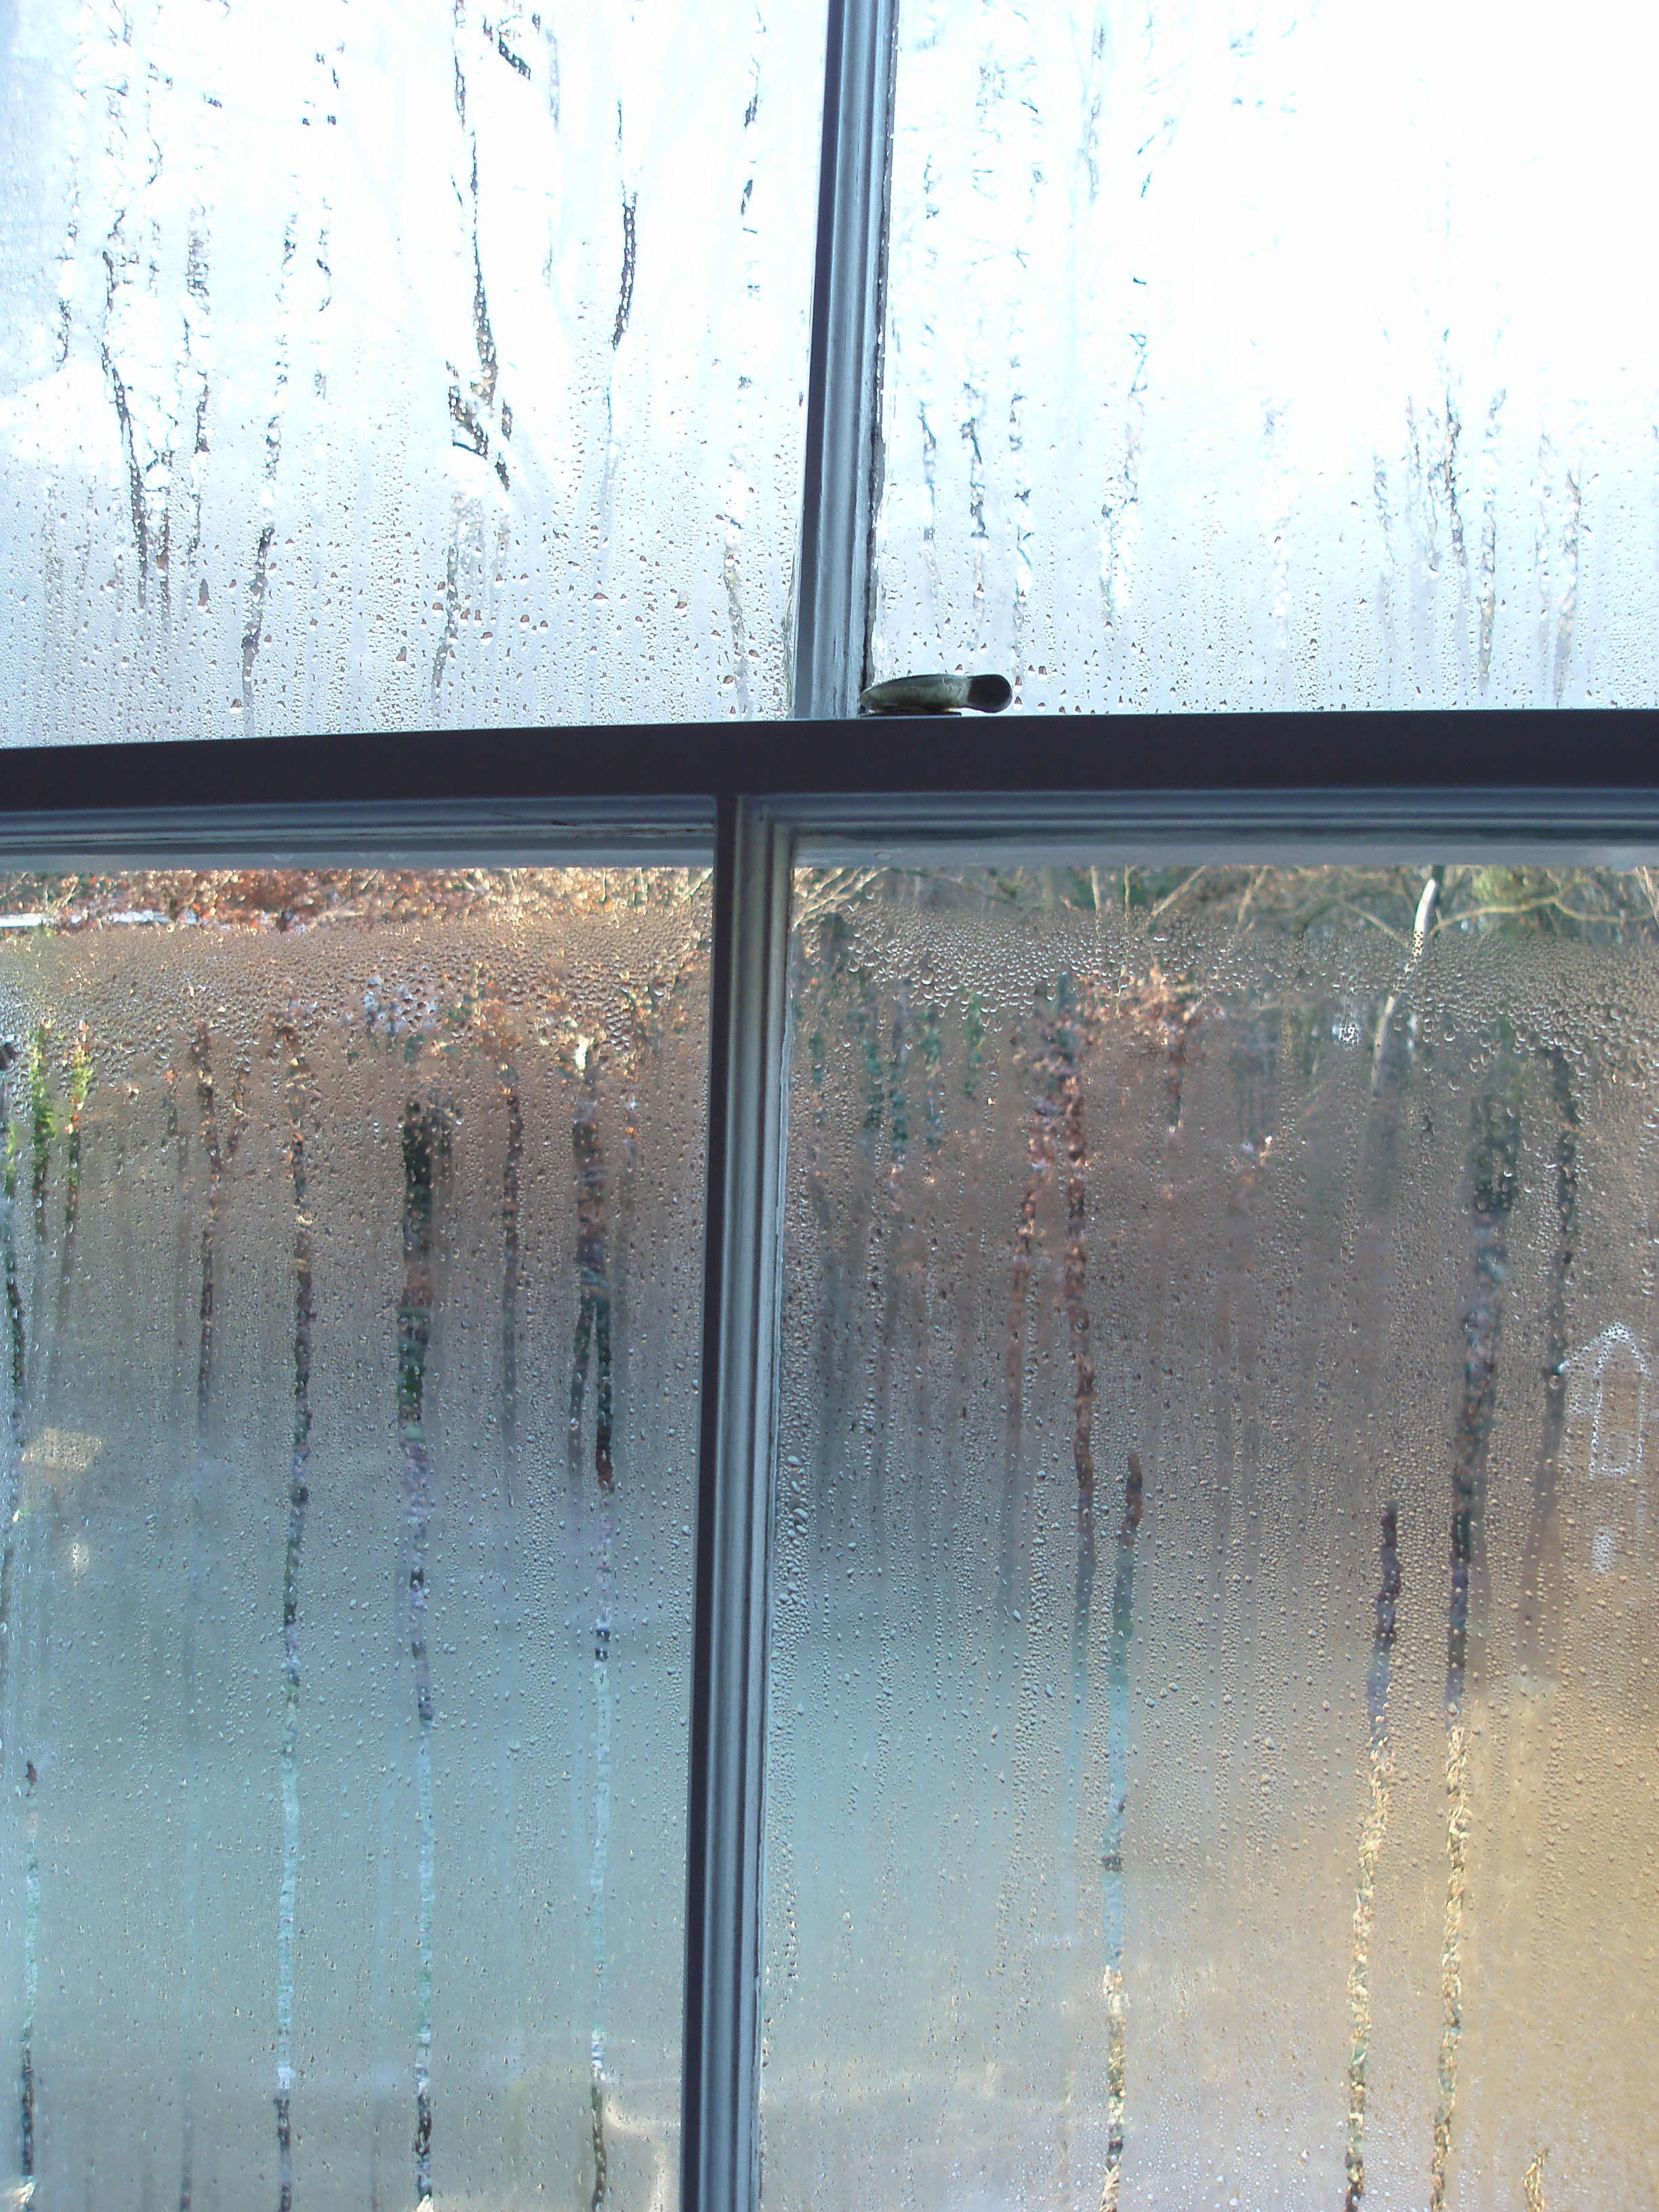 water on the inside of a sash window